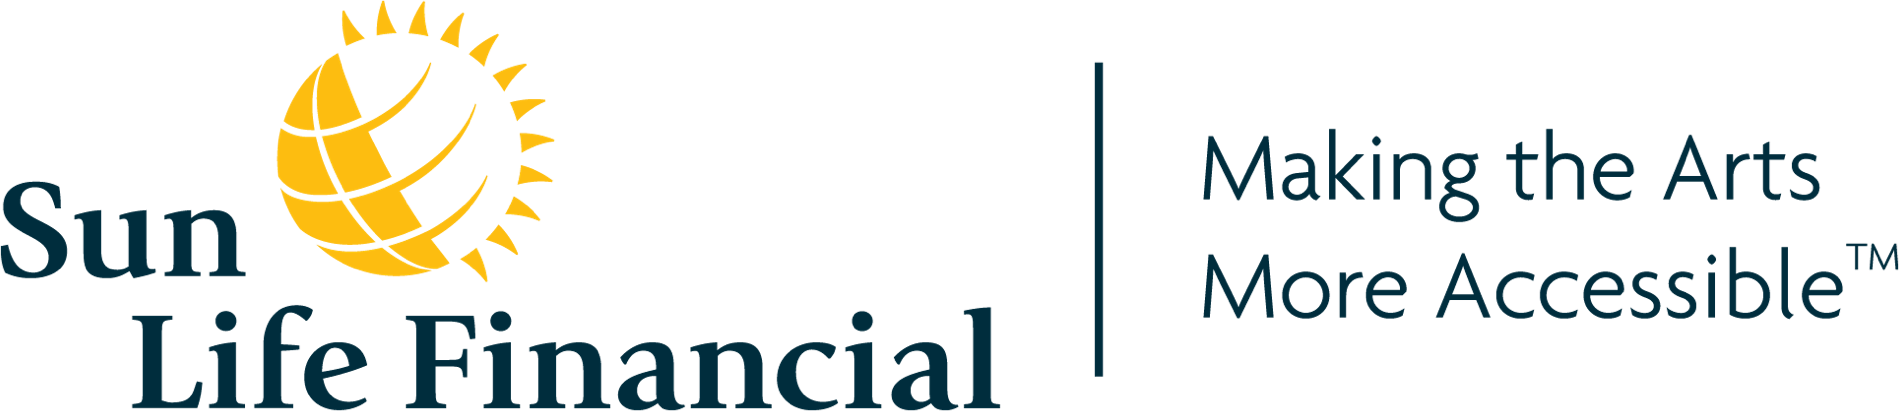 Sunlife_logo_w_tag_2.png